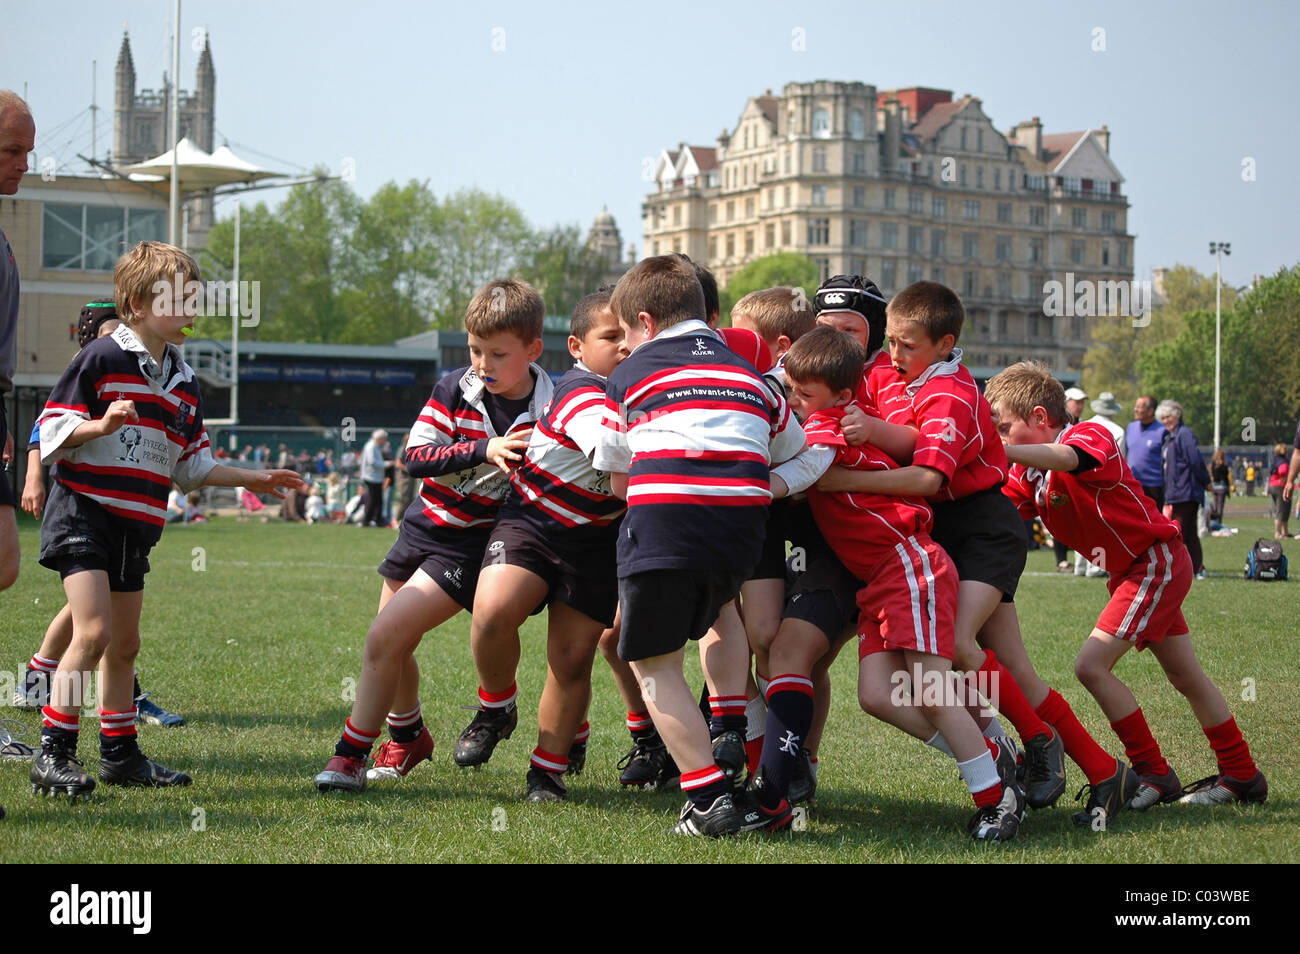 young boys playing in a rugby tournament at Bath, England, UK - Stock Image